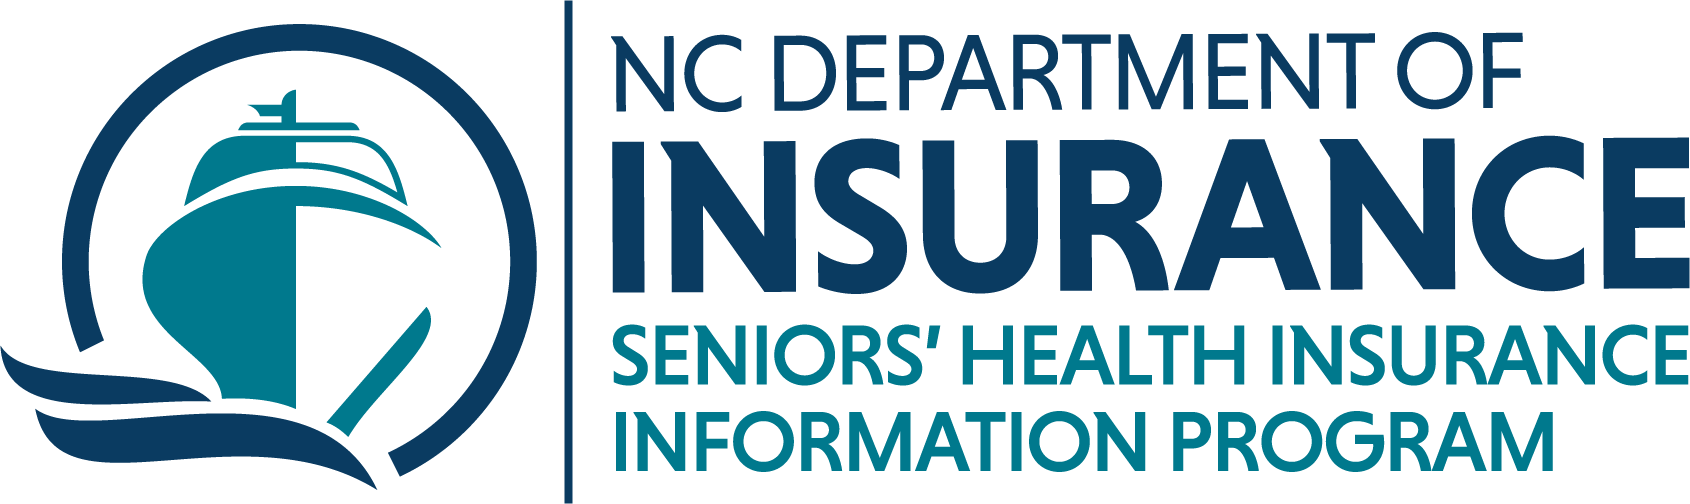 Seniors Health Insurance Information Program Logo